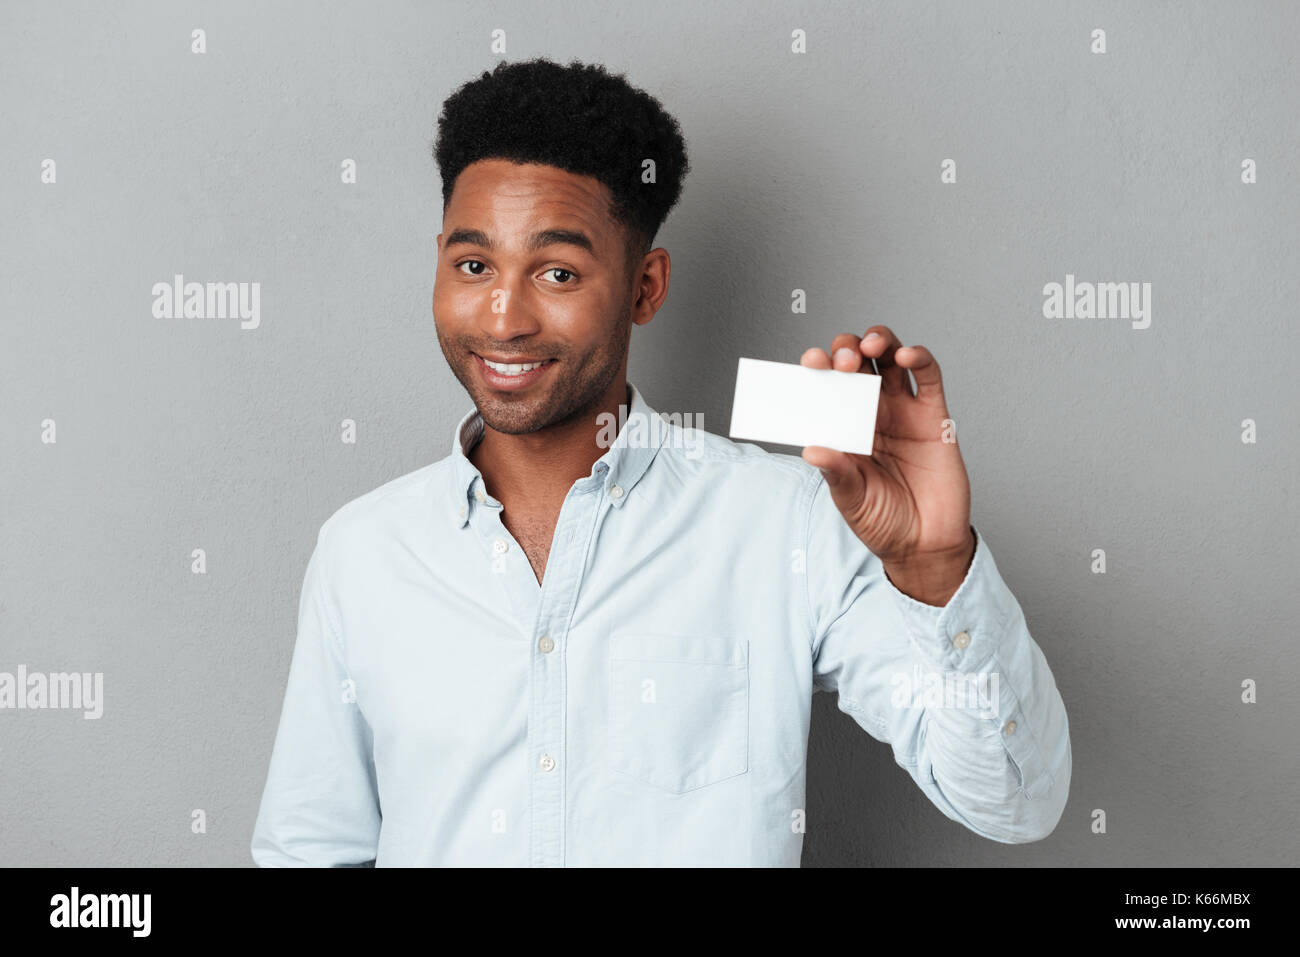 Smiling young afro american guy holding blank business card isolated smiling young afro american guy holding blank business card isolated over gray background colourmoves